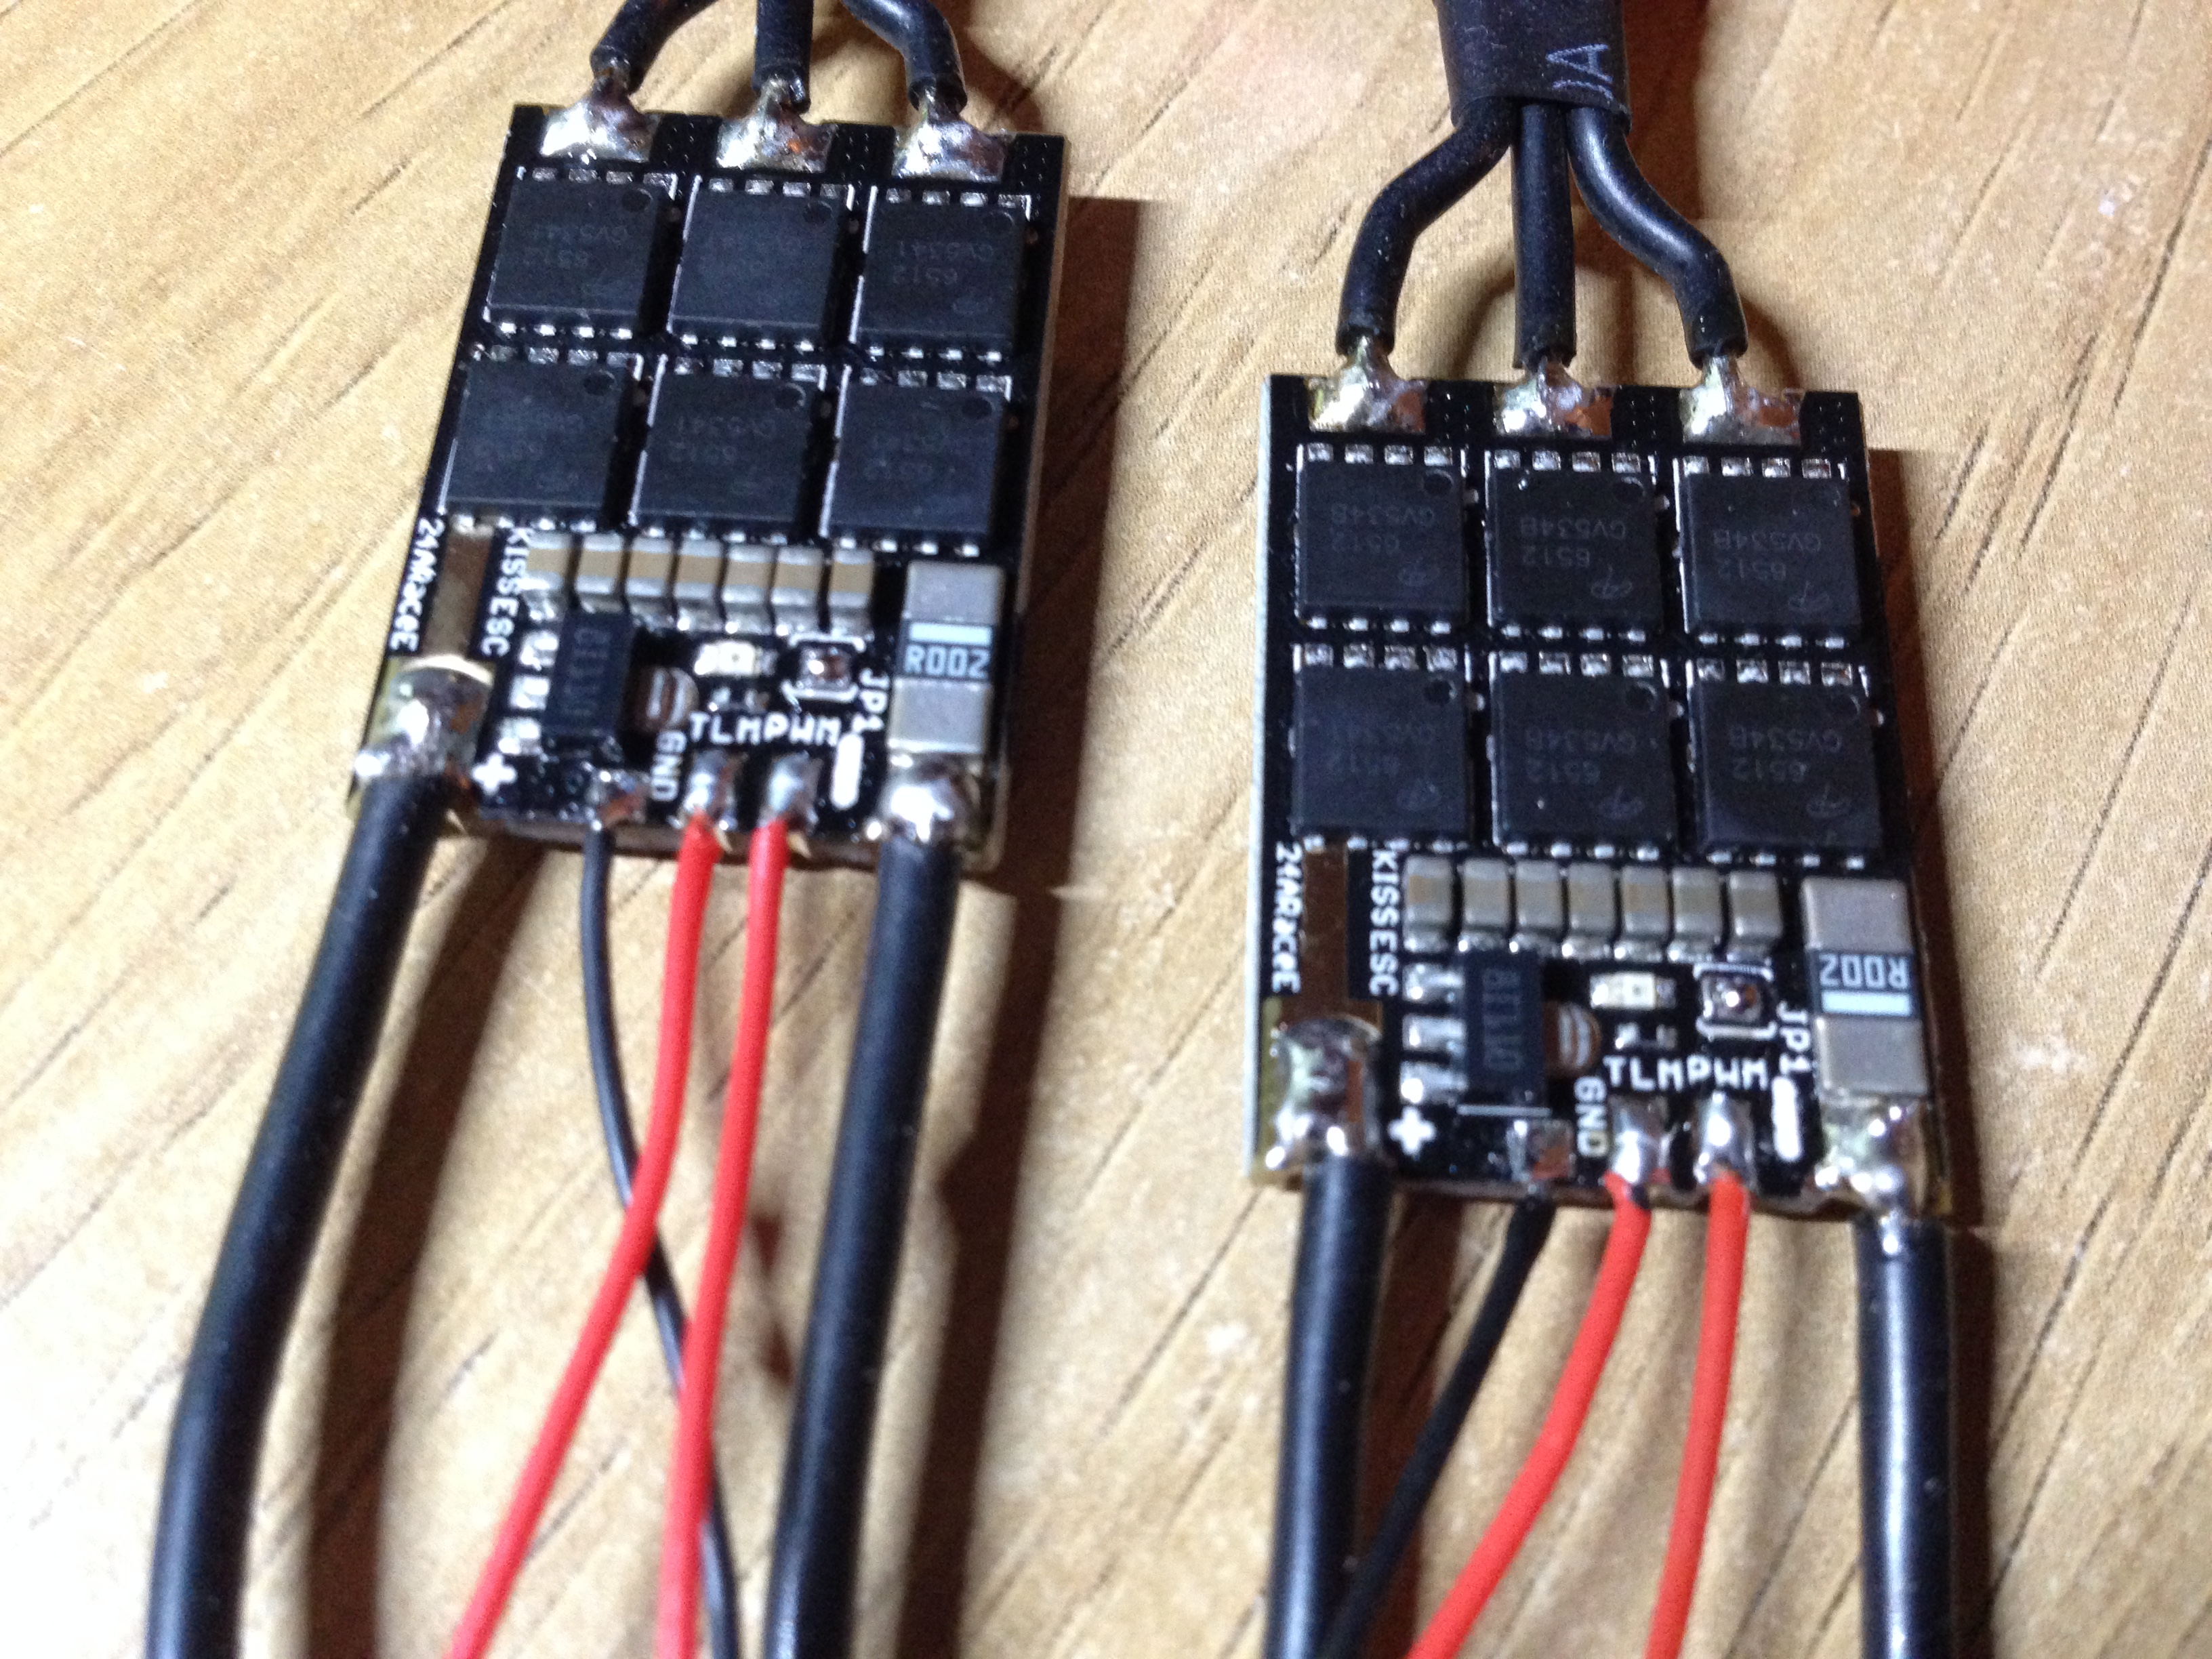 kiss 24a esc wires soldered demonrc nox5 210 mini quad frame oscar liang Brushless ESC Wiring-Diagram at crackthecode.co